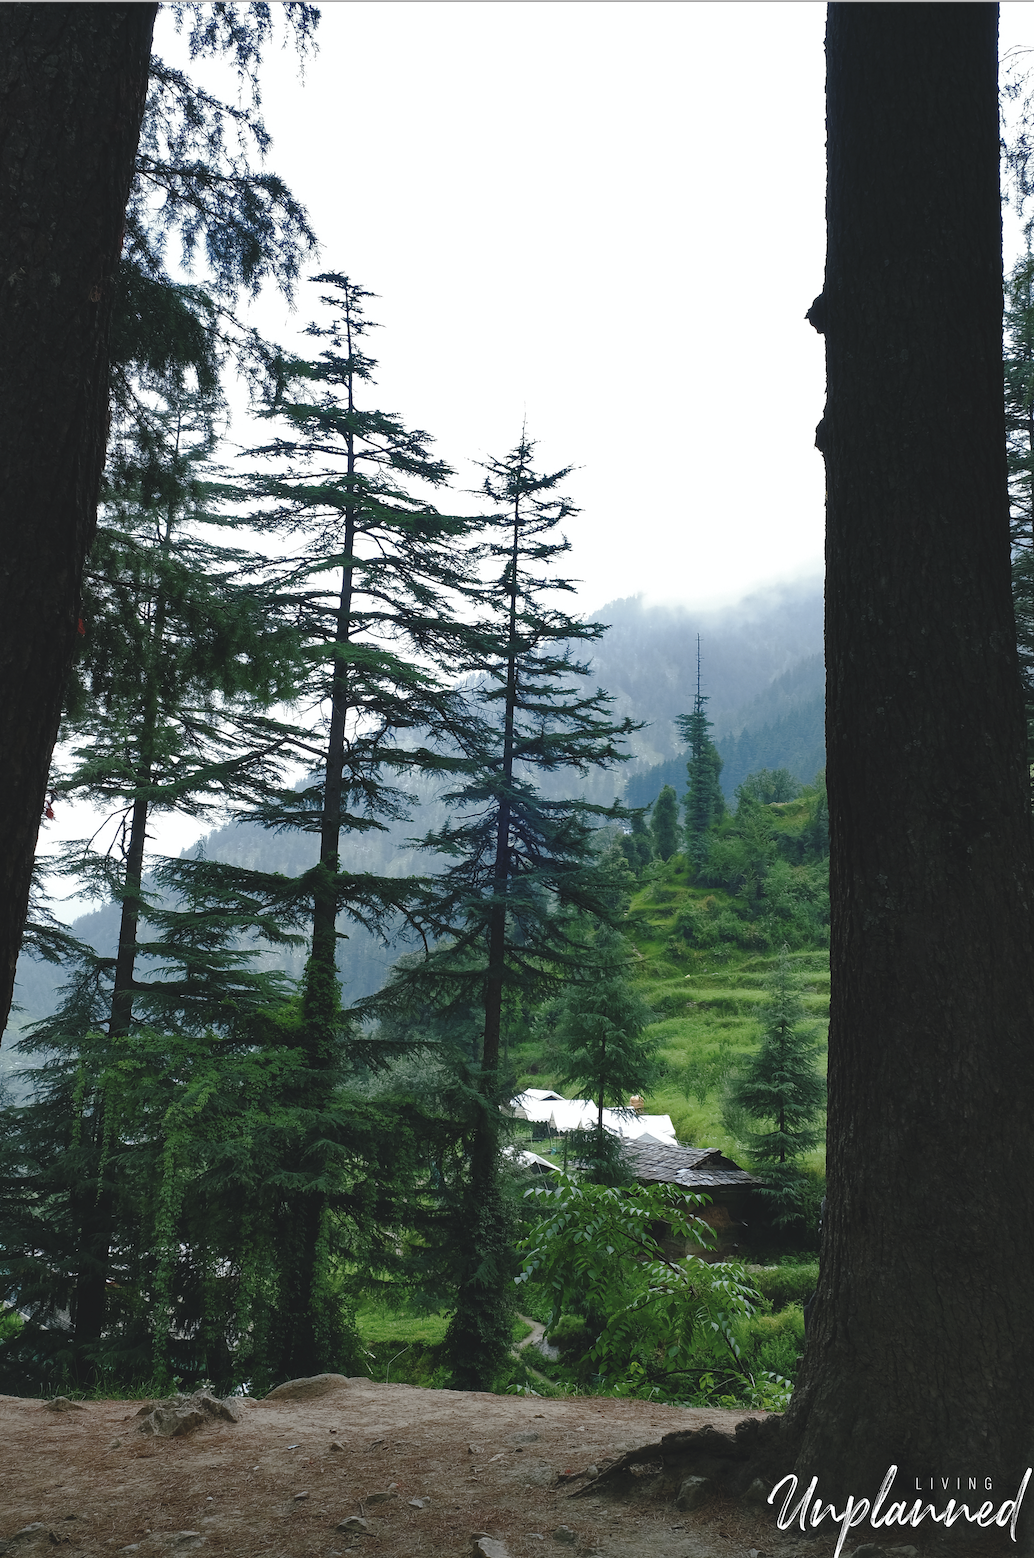 My Manali from forest